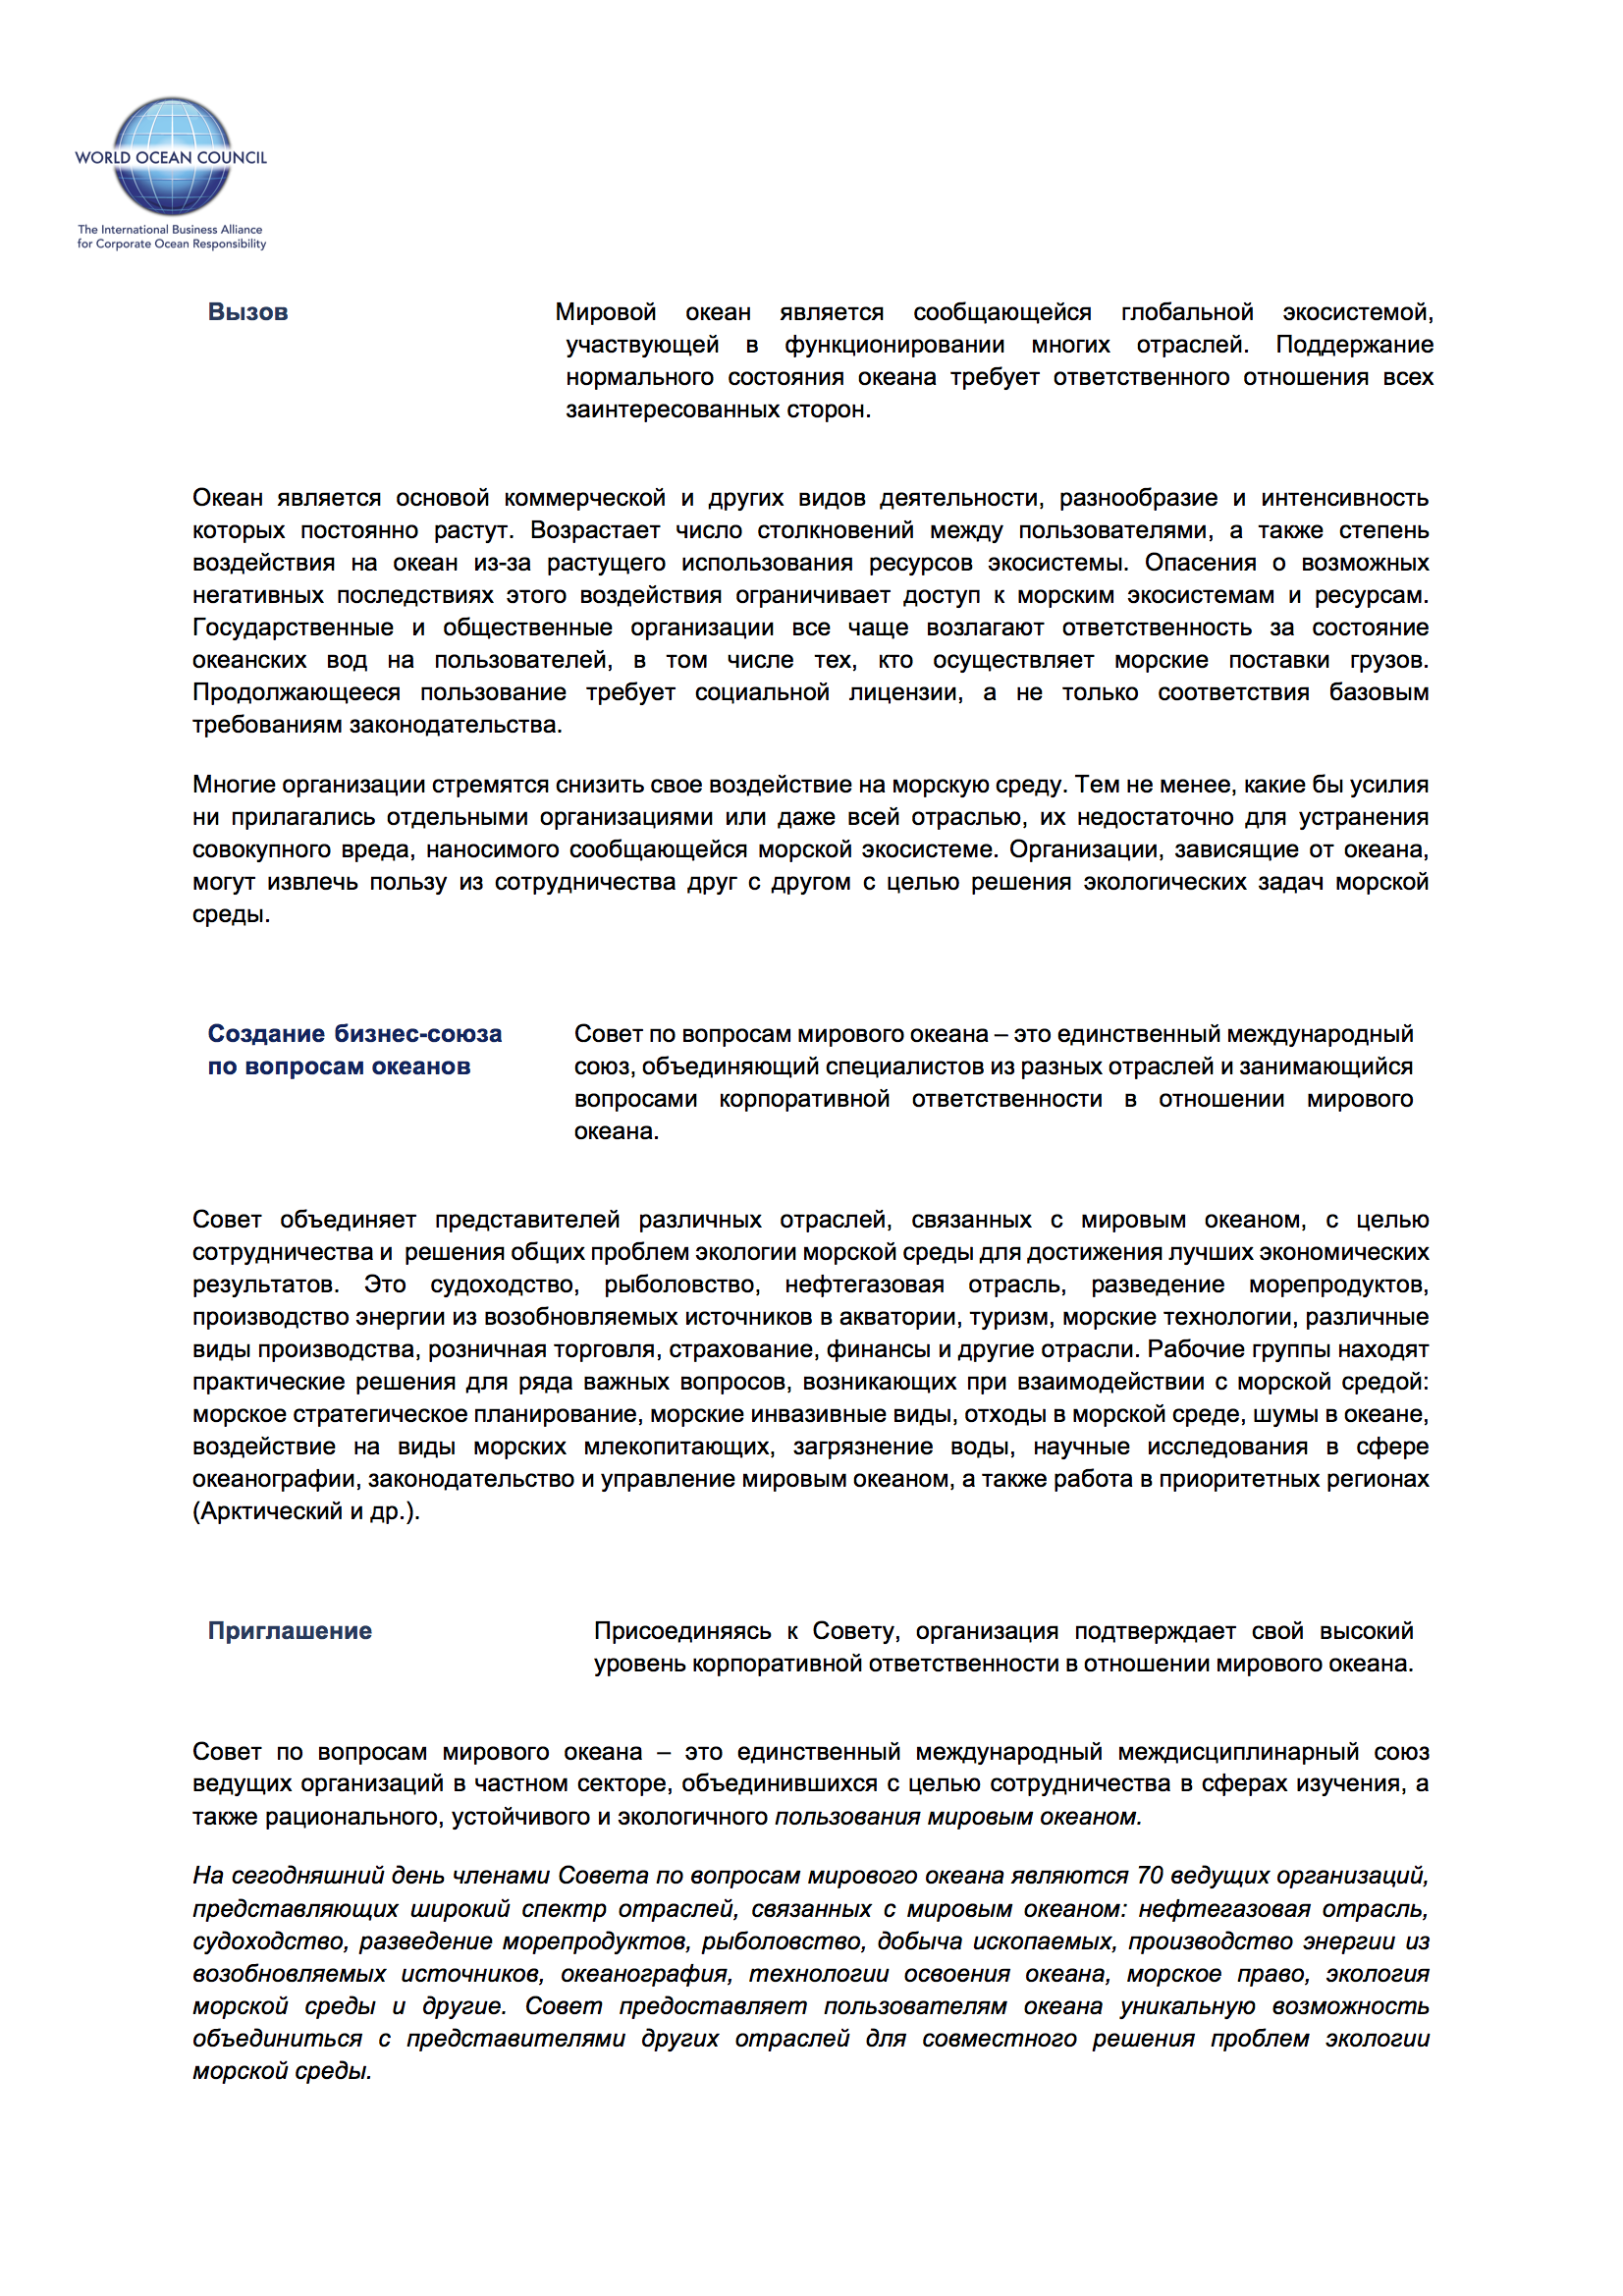 WOC in One Page, in Russian